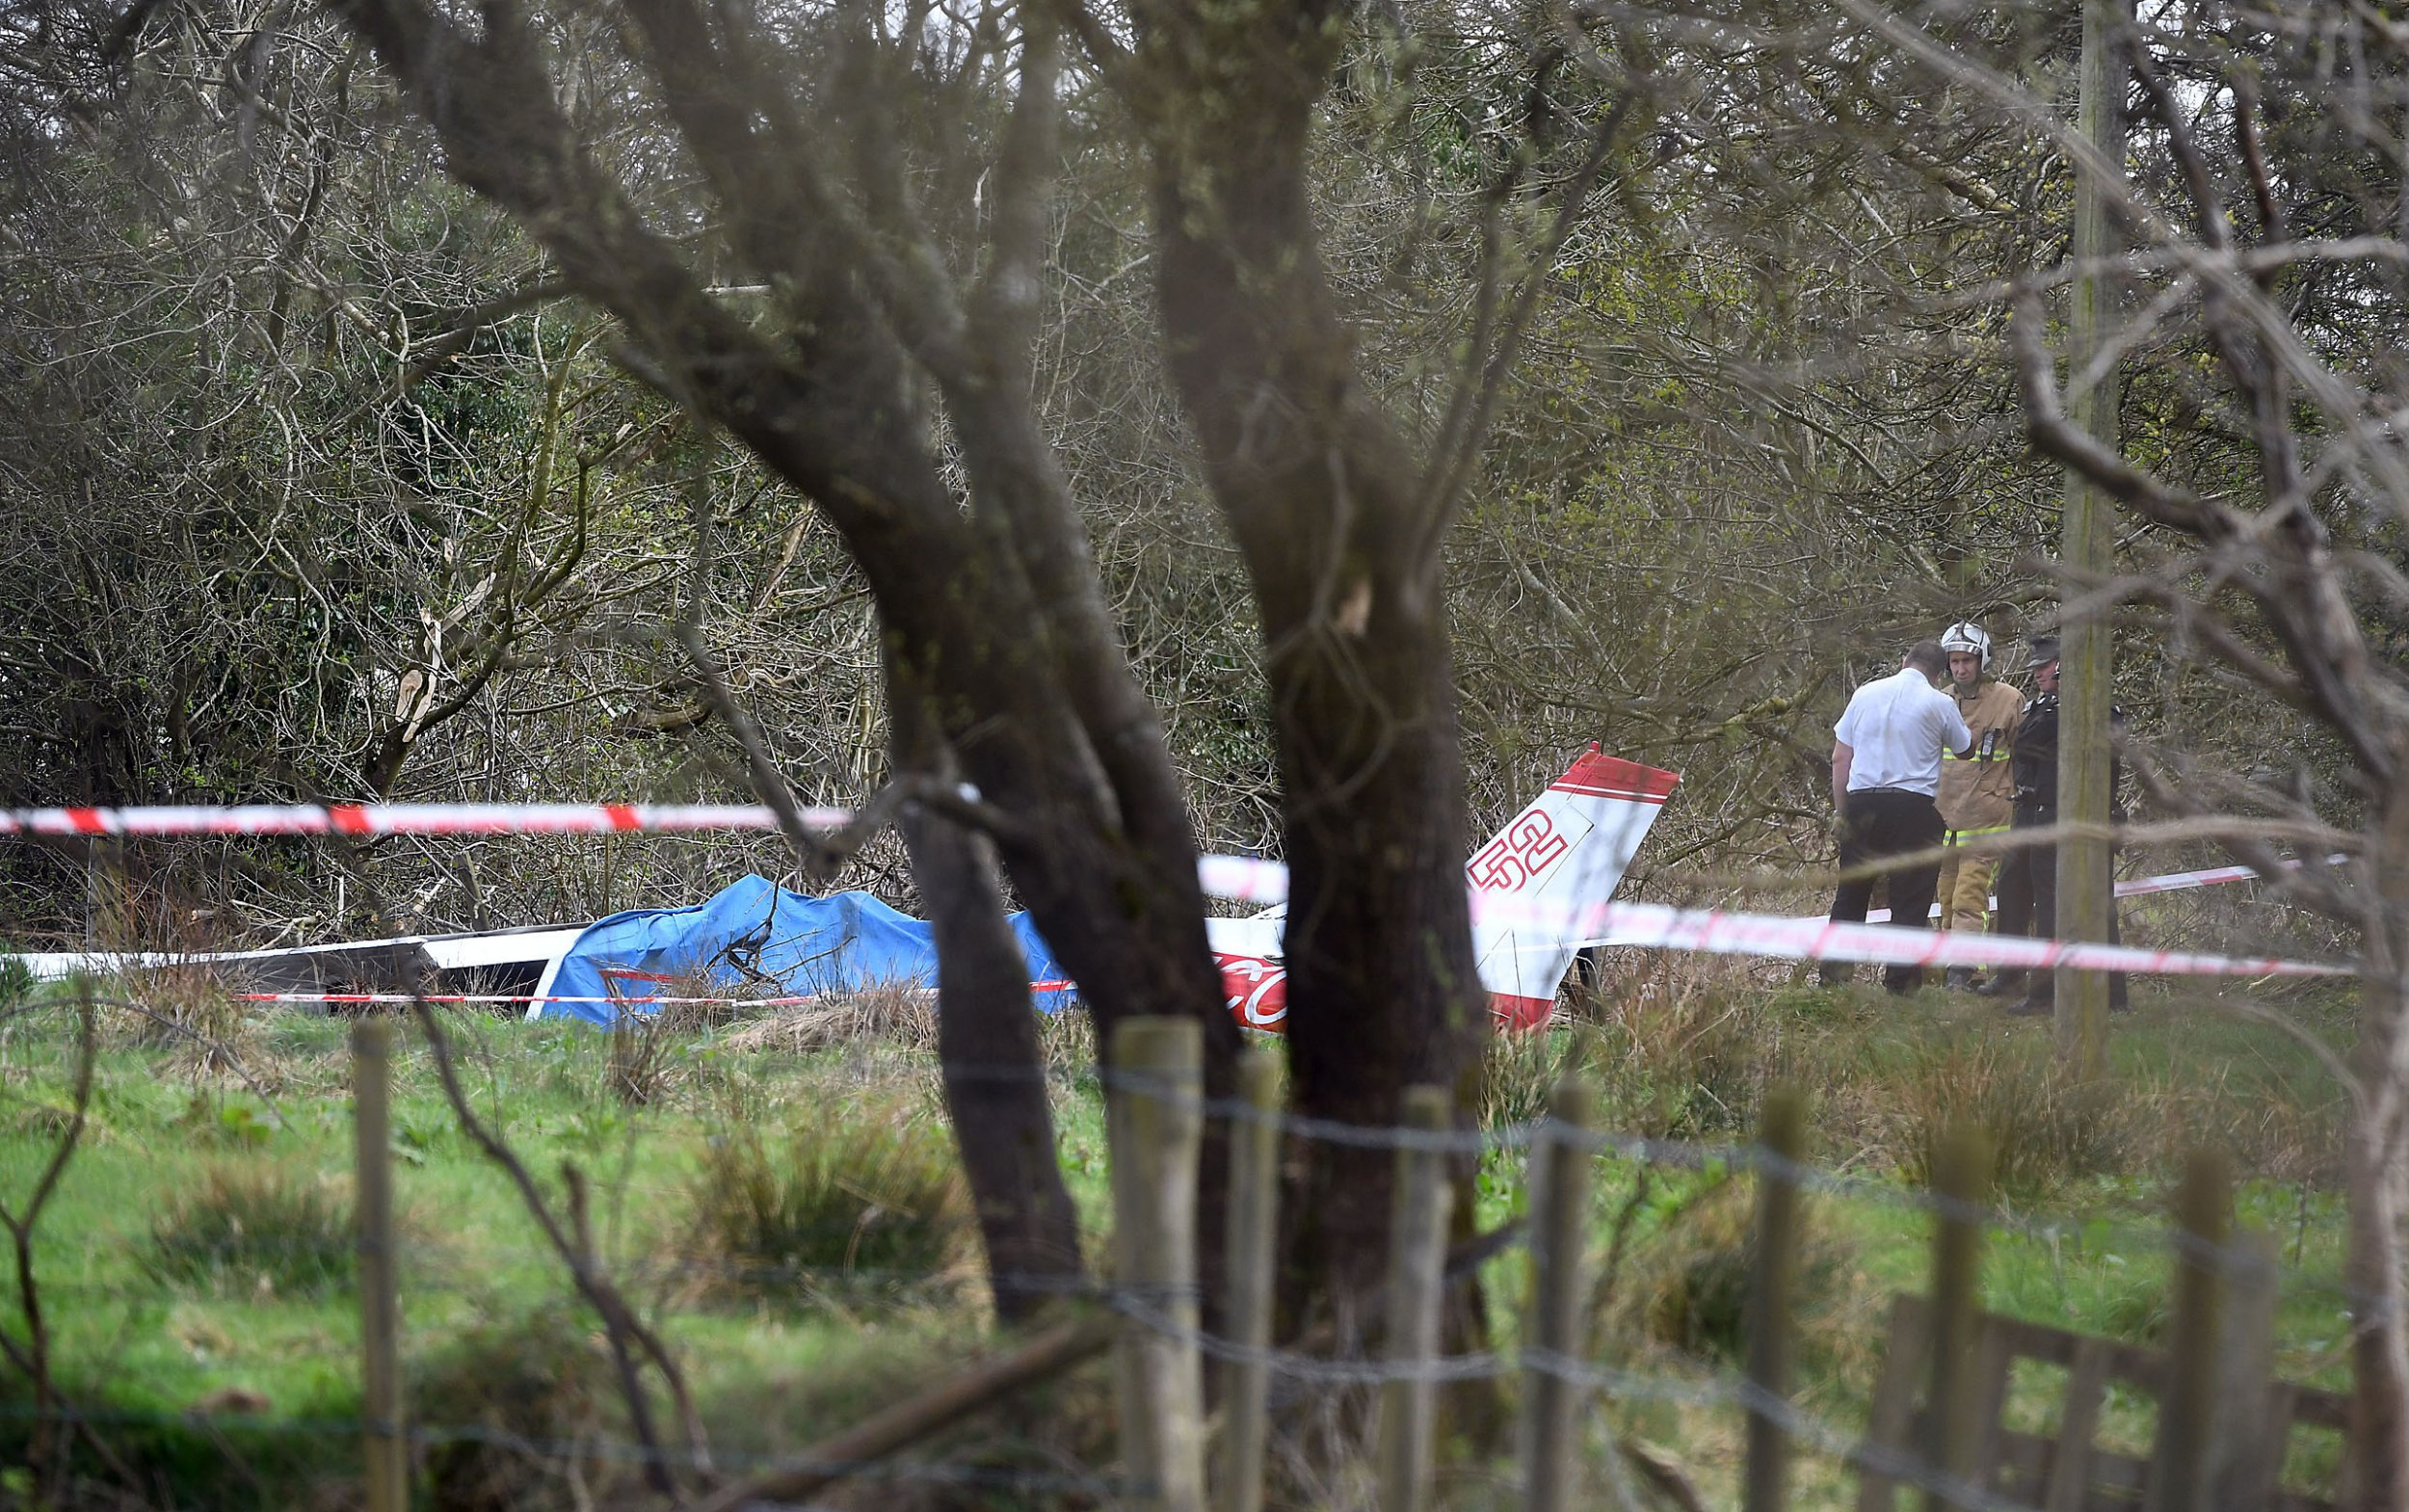 Alan Lewis - PhotopressBelfast.co.uk 19/4/2018 Mandatory Credit - Picture by Justin Kernoghan Emergency services are at the scene of a light aircraft crash in County Antrim.The small plane, thought to be a Cessna, reportedly came down between Nutts Corner and Loanends at about 12:20.An eyewitness told the BBC the plane circled over houses and tried to land, before crashing in a field. She said the aircraft then exploded.No patients were taken from the scene, said the NI Ambulance Service (NIAS).It put its major incident protocols into action, but the incident was stood down at 12:49.